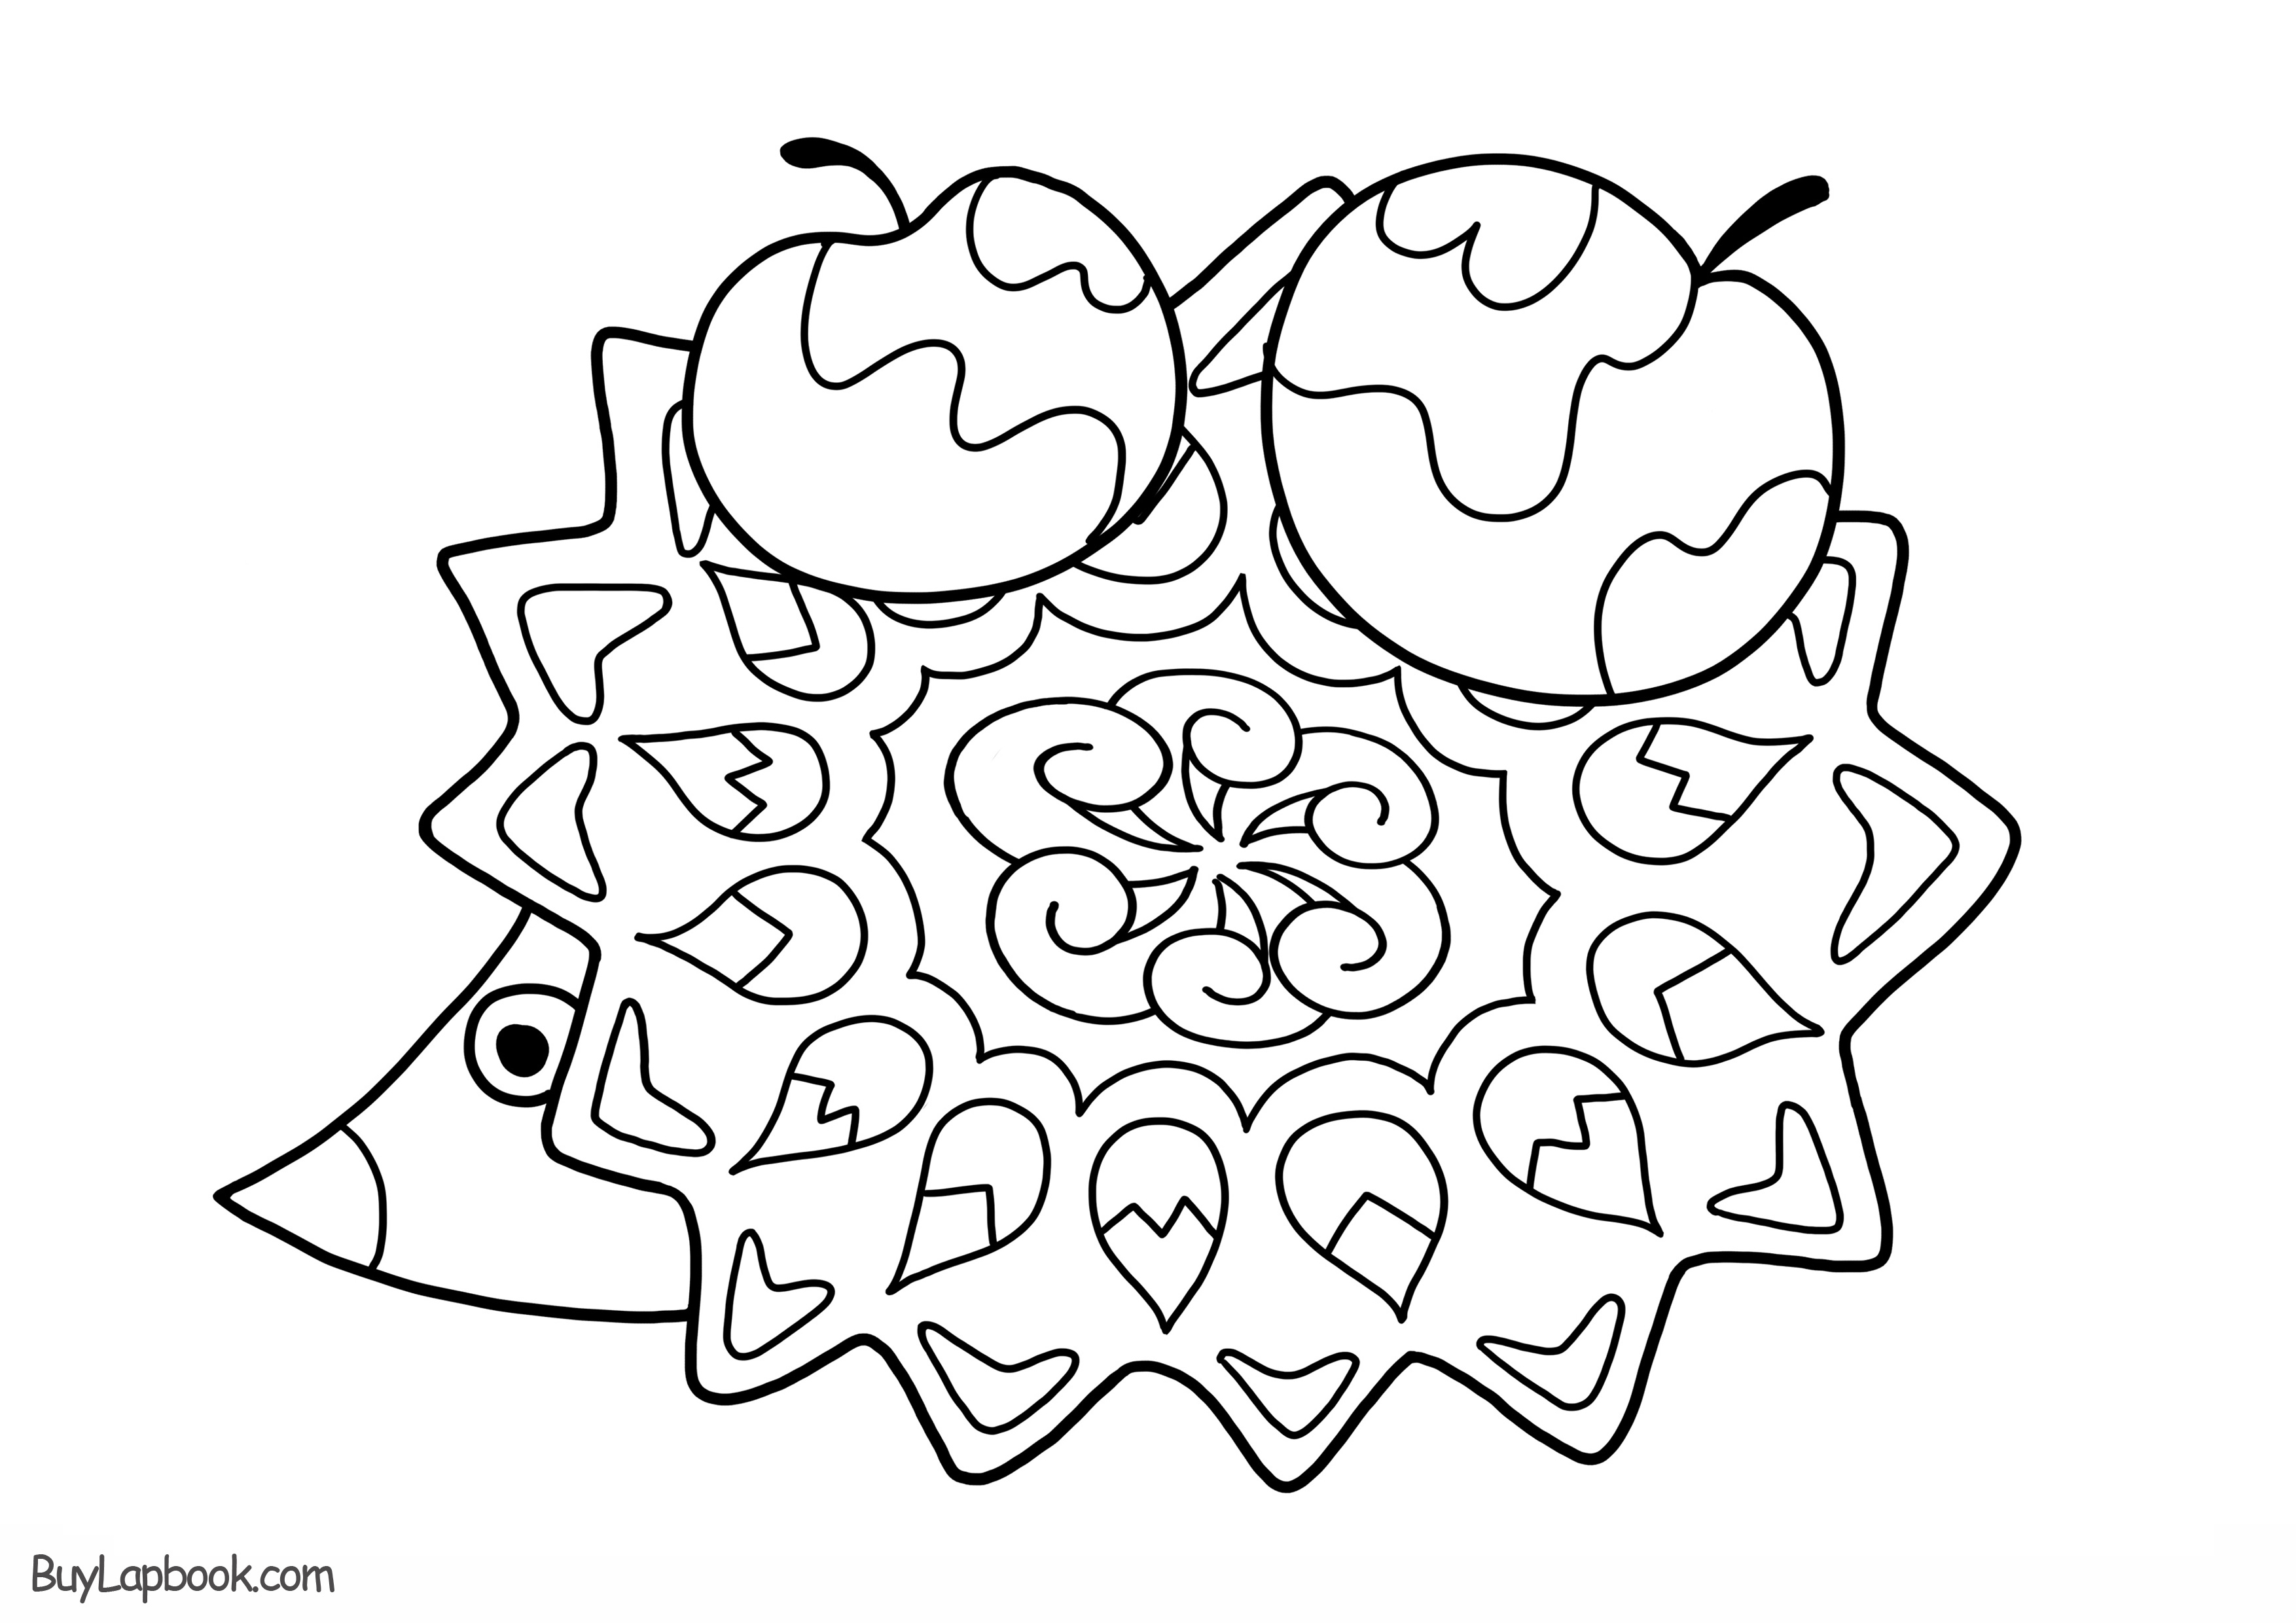 hedgehog pictures to color hedgehog coloring pages download and print hedgehog color to hedgehog pictures